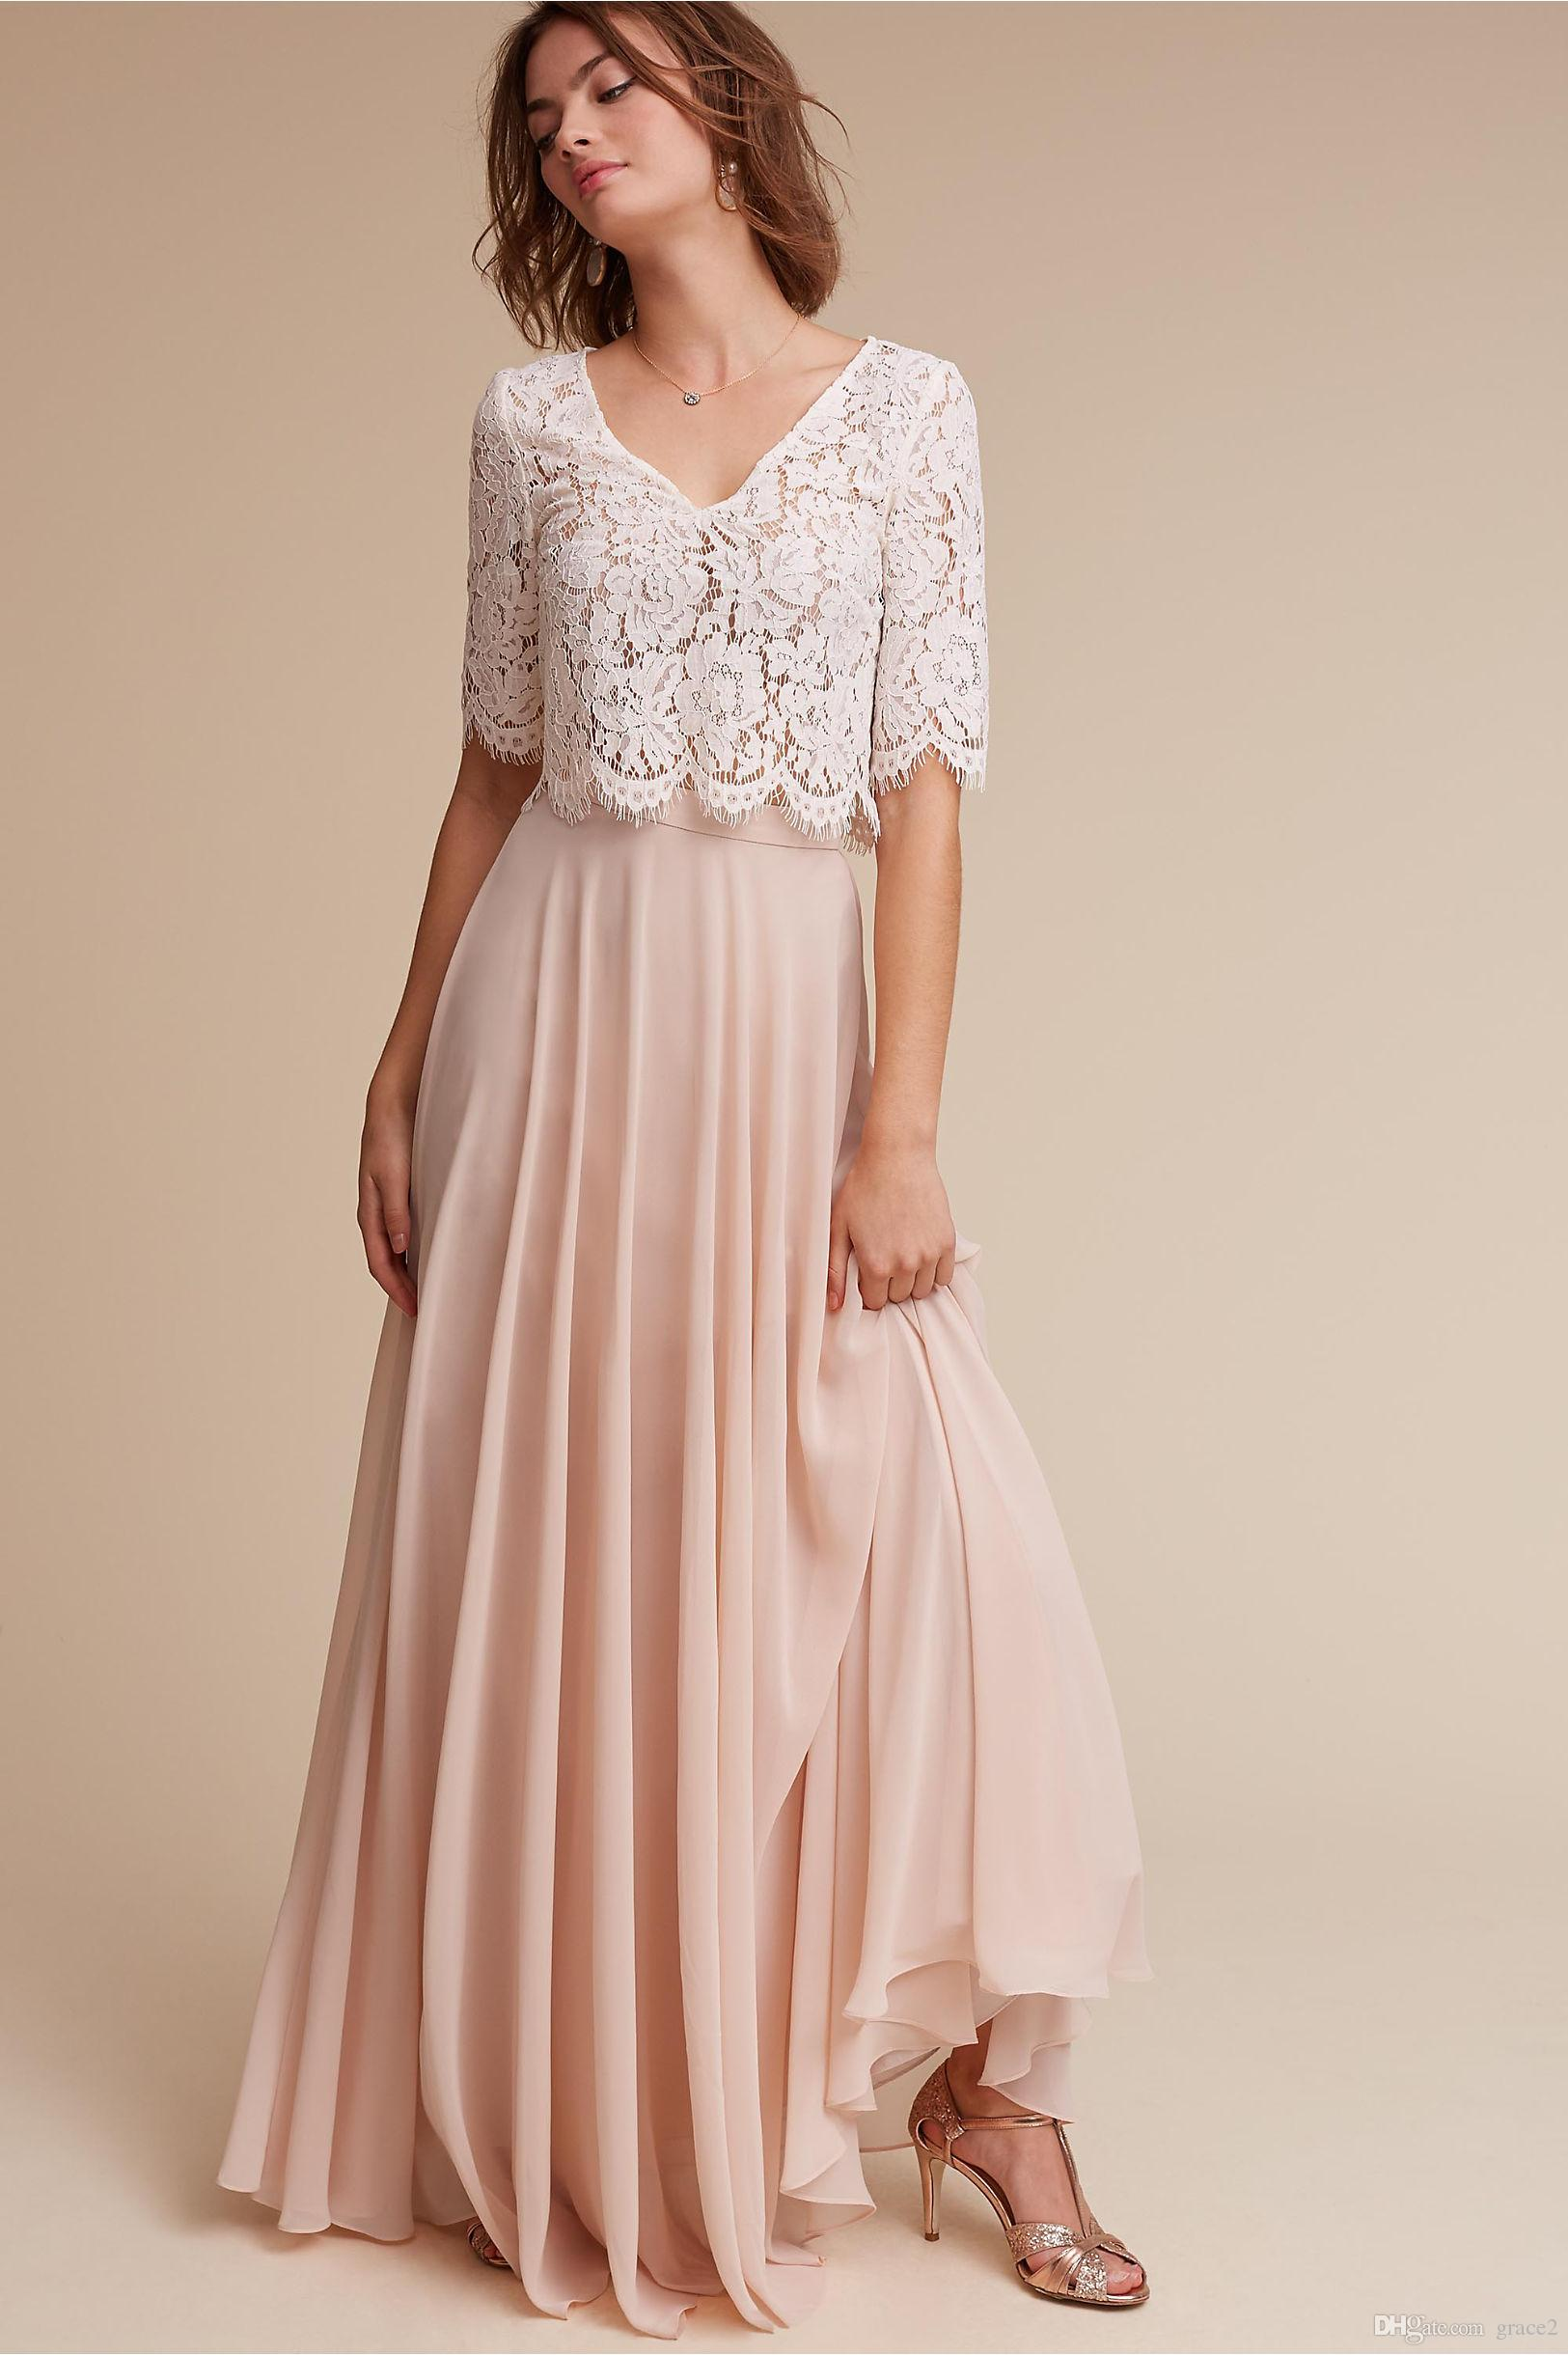 Lace & Chiffon Bridesmaid Dresses 2017 Bhldn Under 100 With Half ...